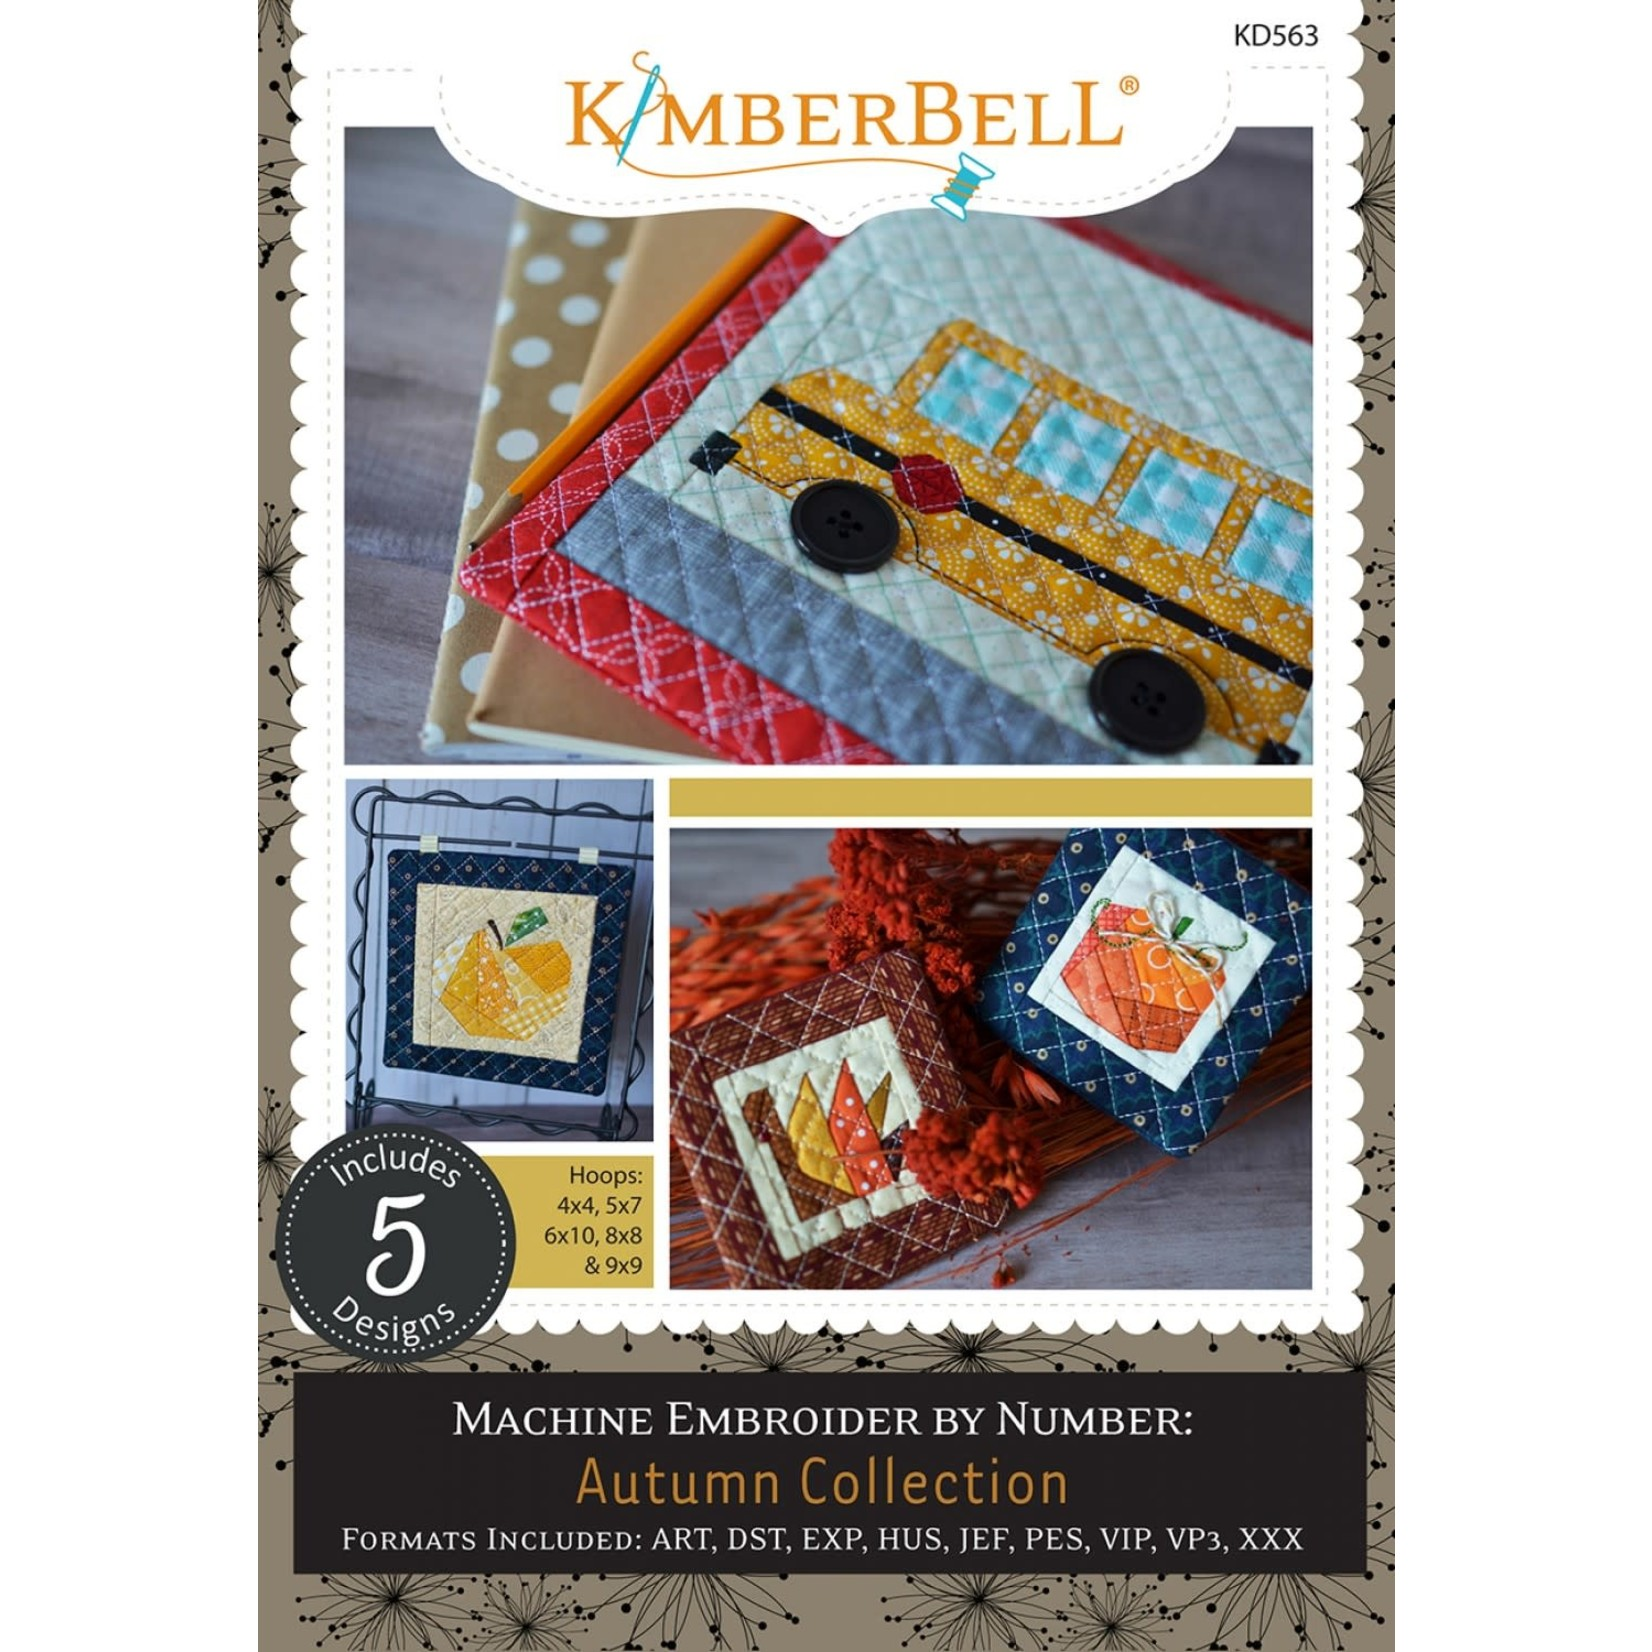 KIMBERBELL DESIGNS Machine Embroider by Number: Autumn Collection